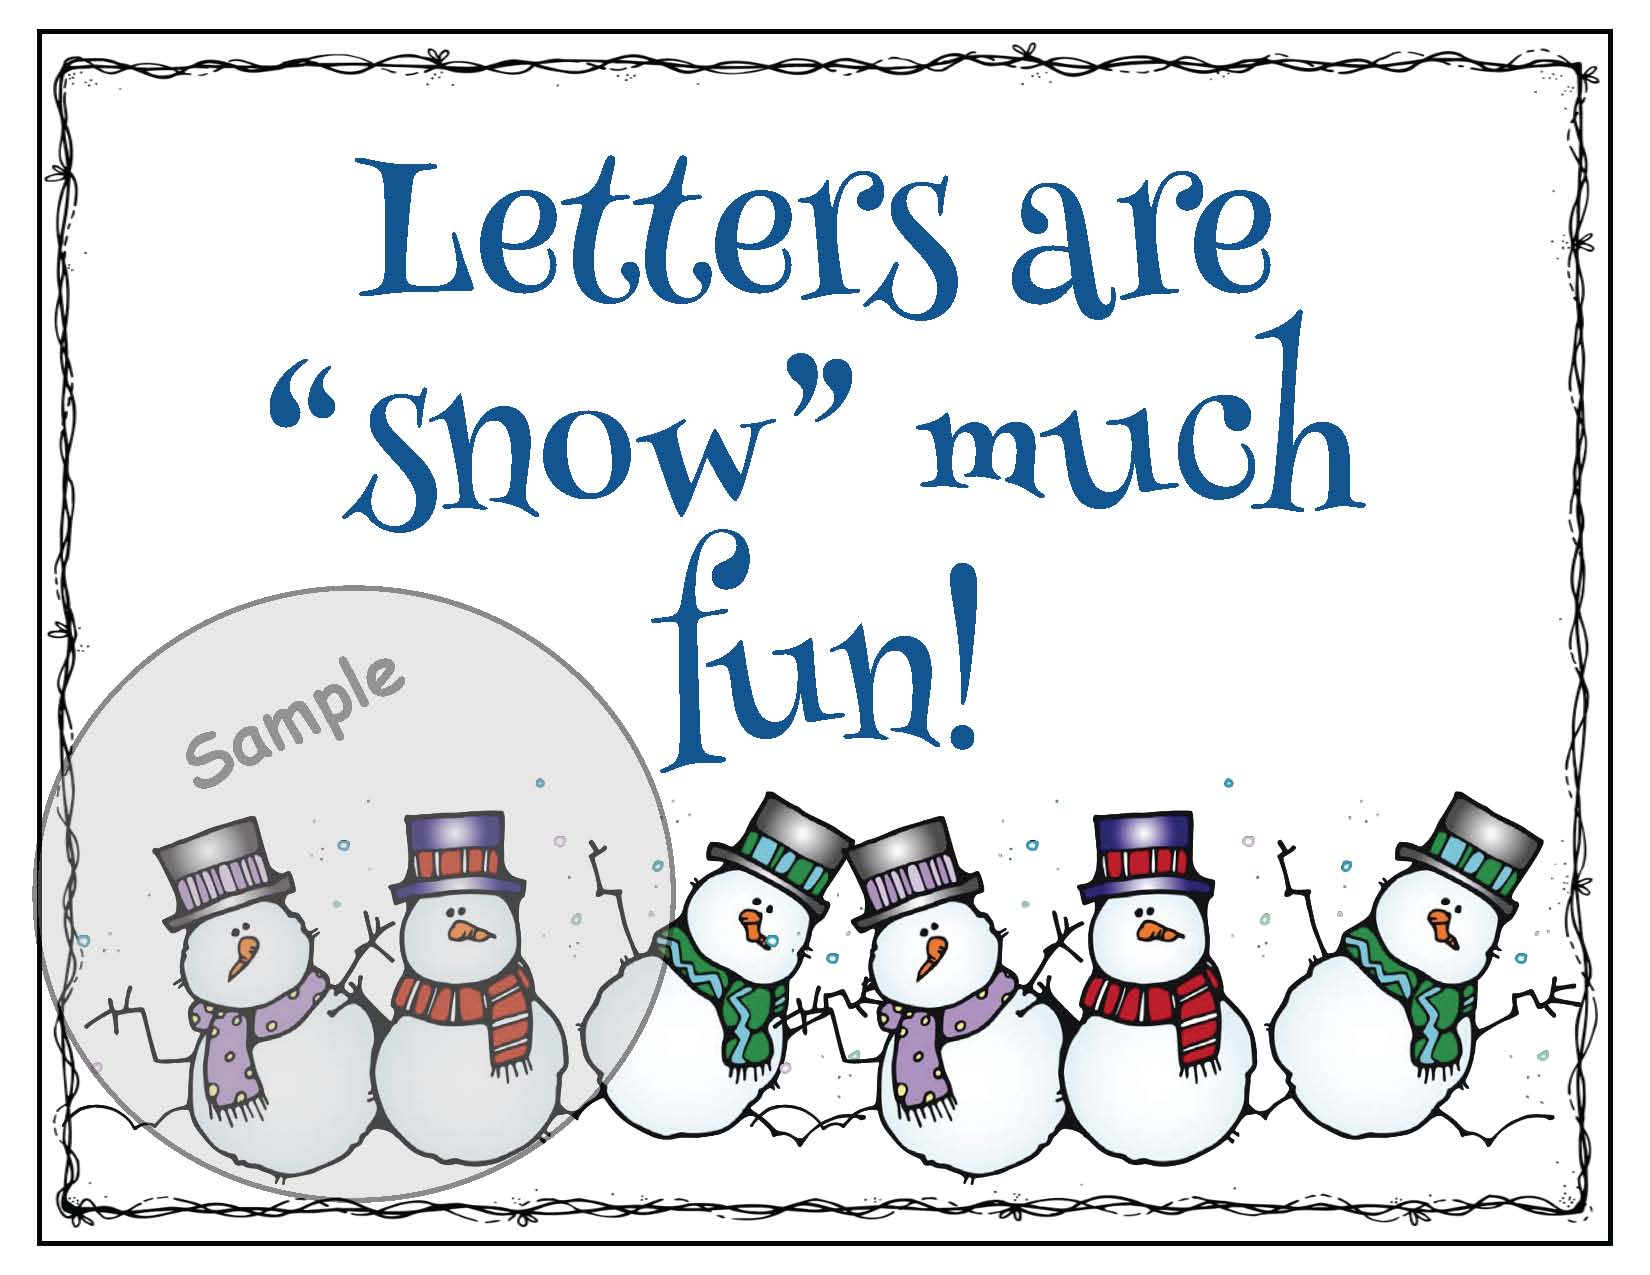 snowflake activities, alphabet activities, winter alphabet activities, letter art, letter crafts, snowflake poem, January writing prompts, snowflake writing prompts